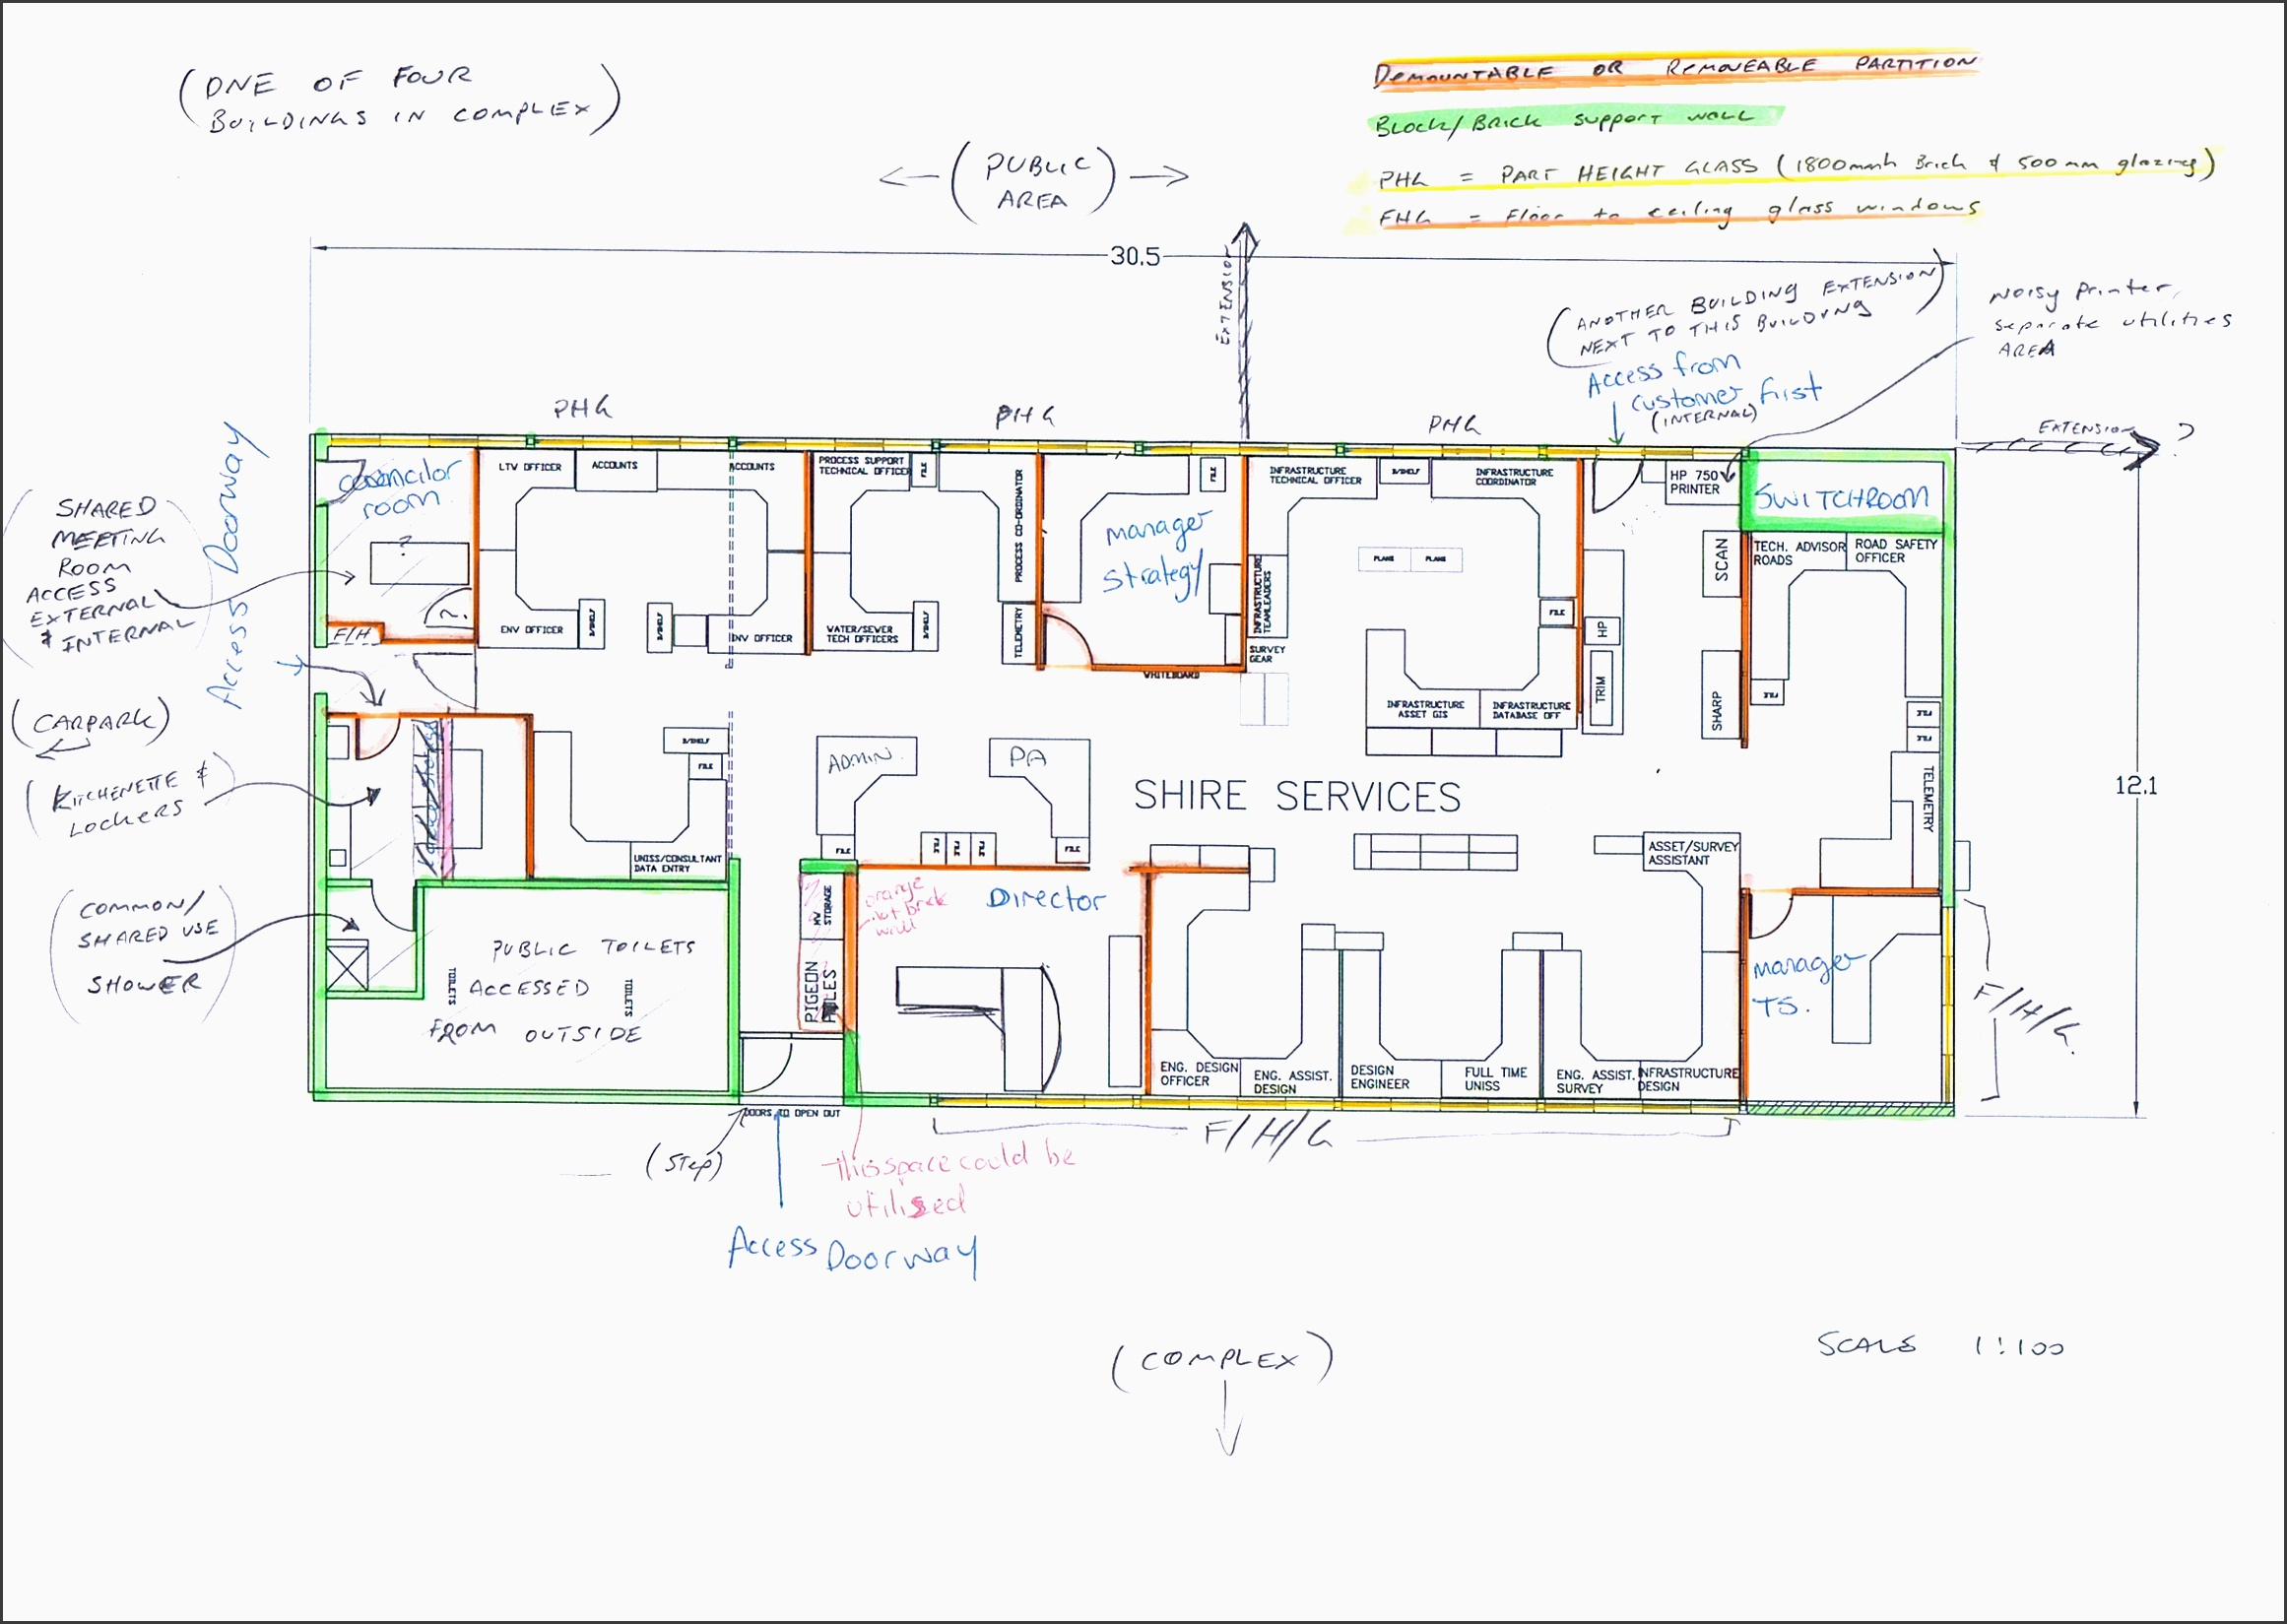 wonderful office space planner online images best idea home